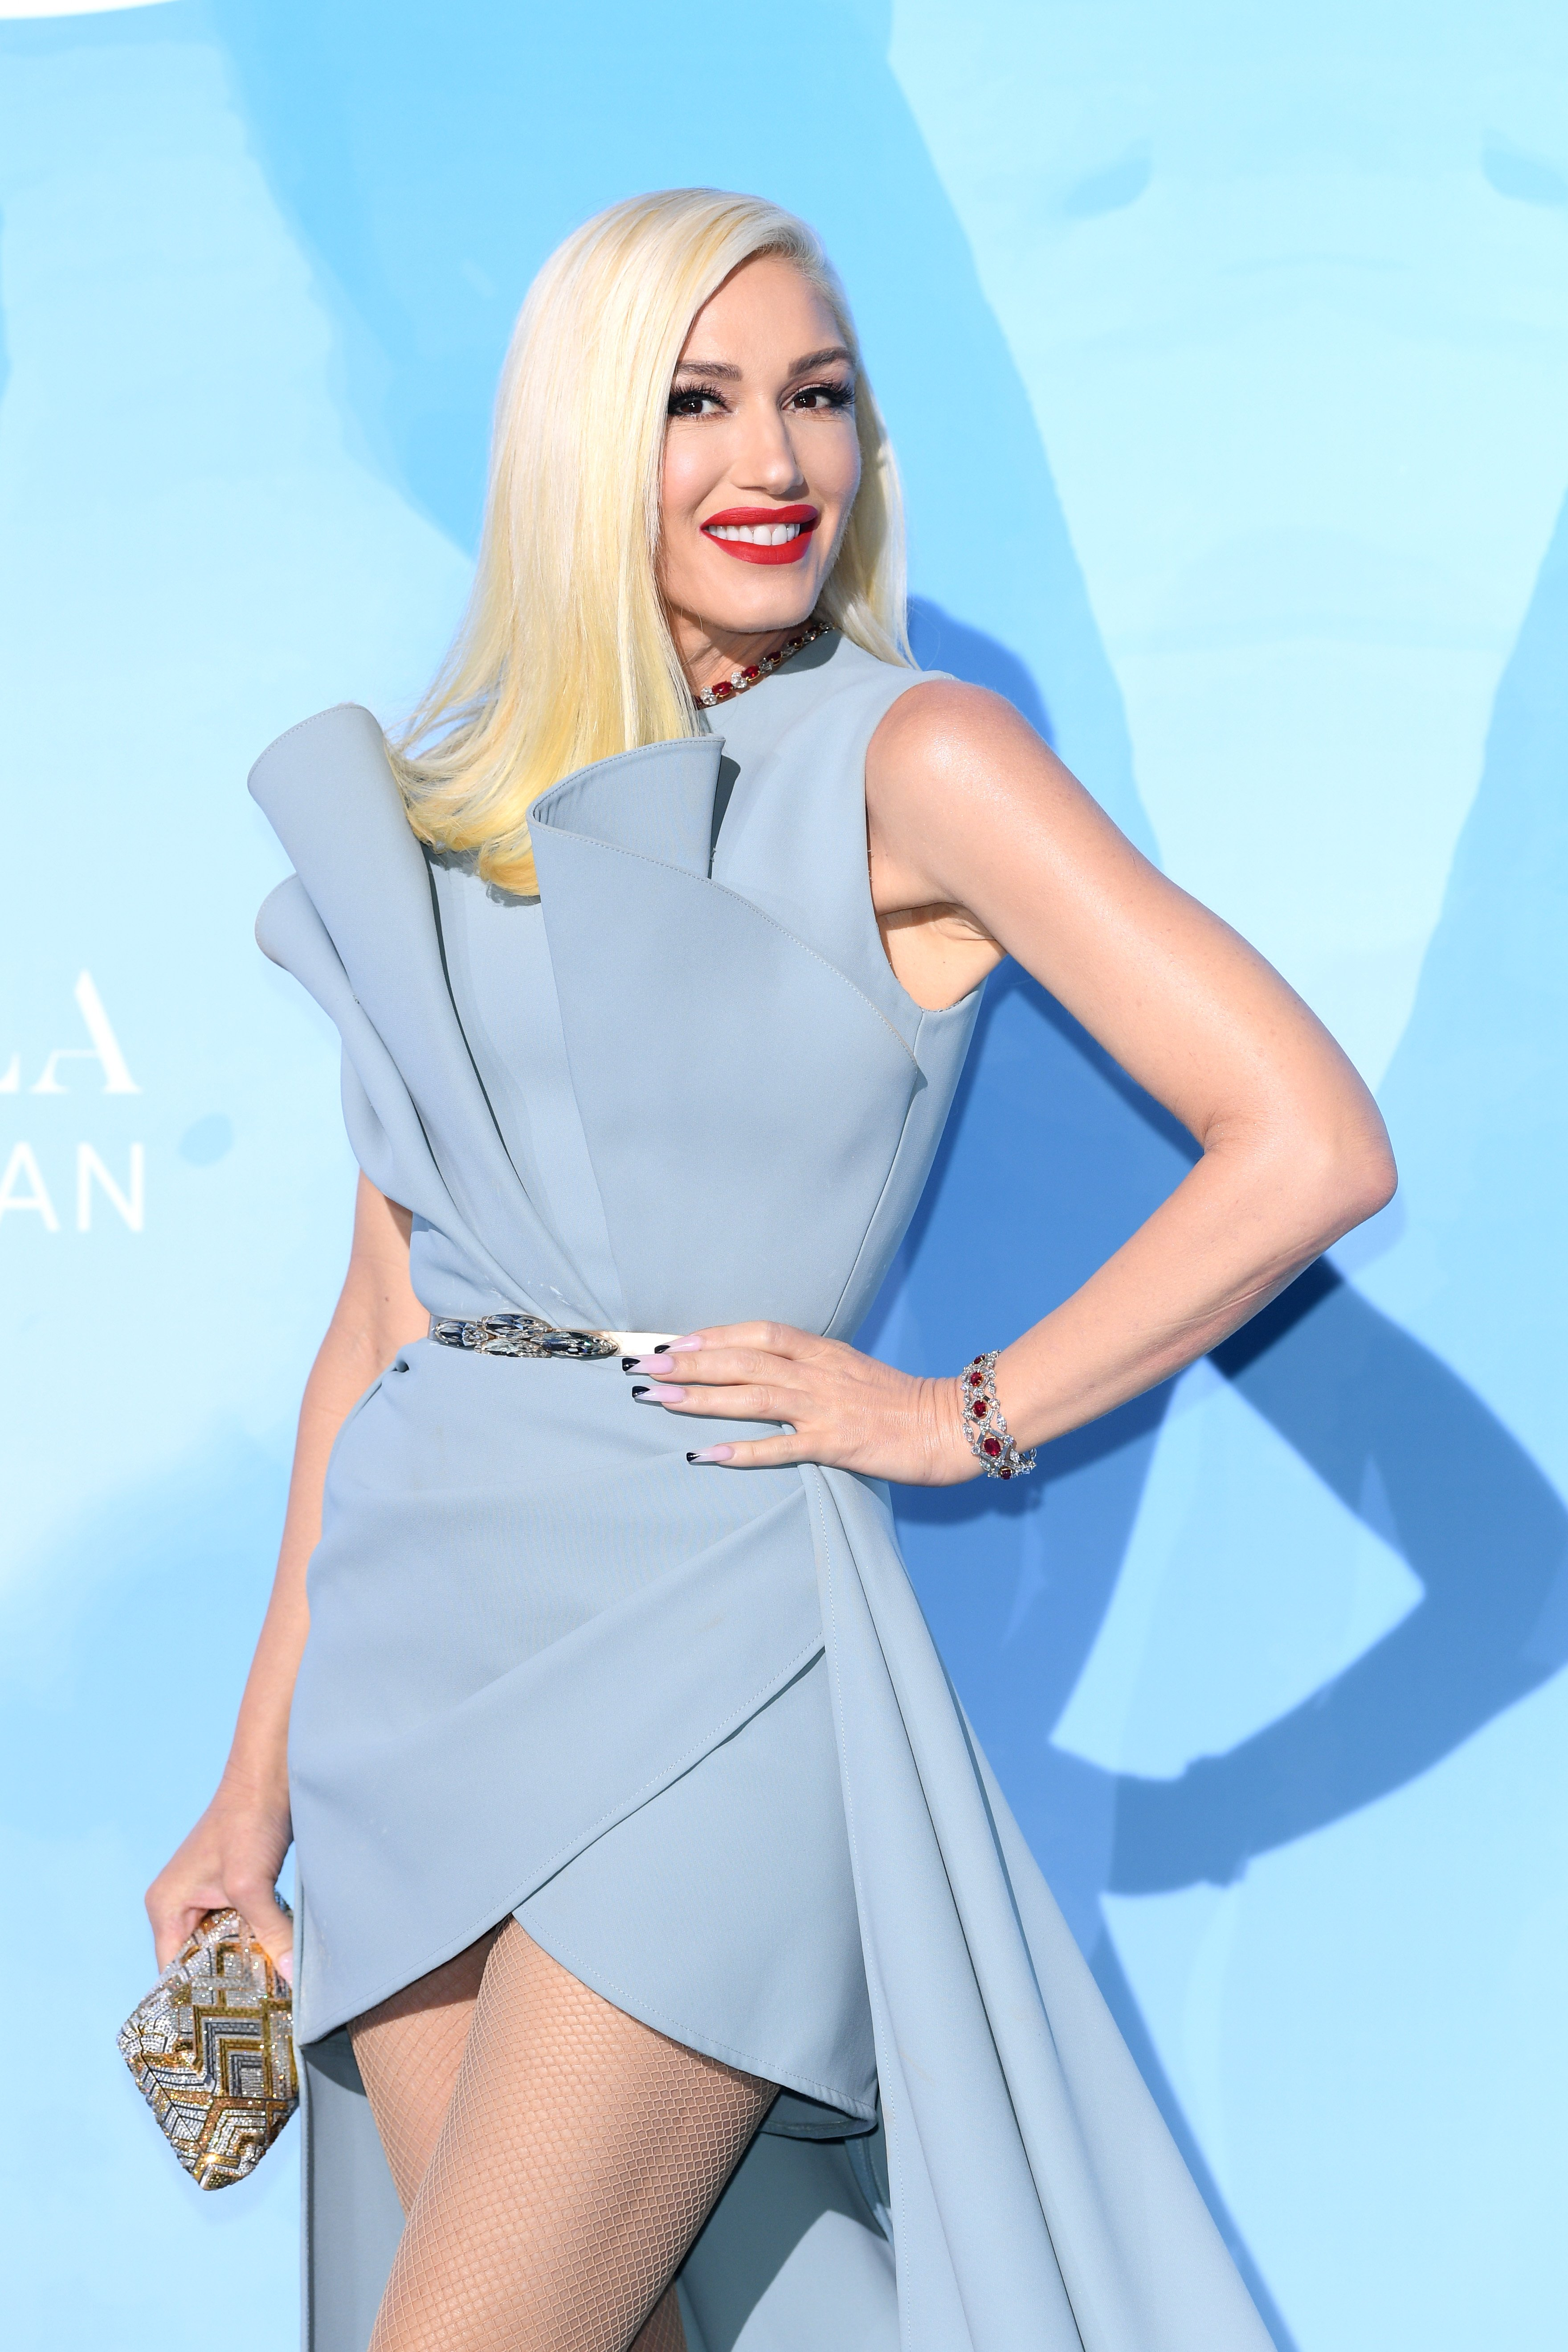 Gwen Stefani attends the Gala for the Global Ocean on September 26, 2019, in Monte-Carlo, Monaco. | Source: Getty Images.